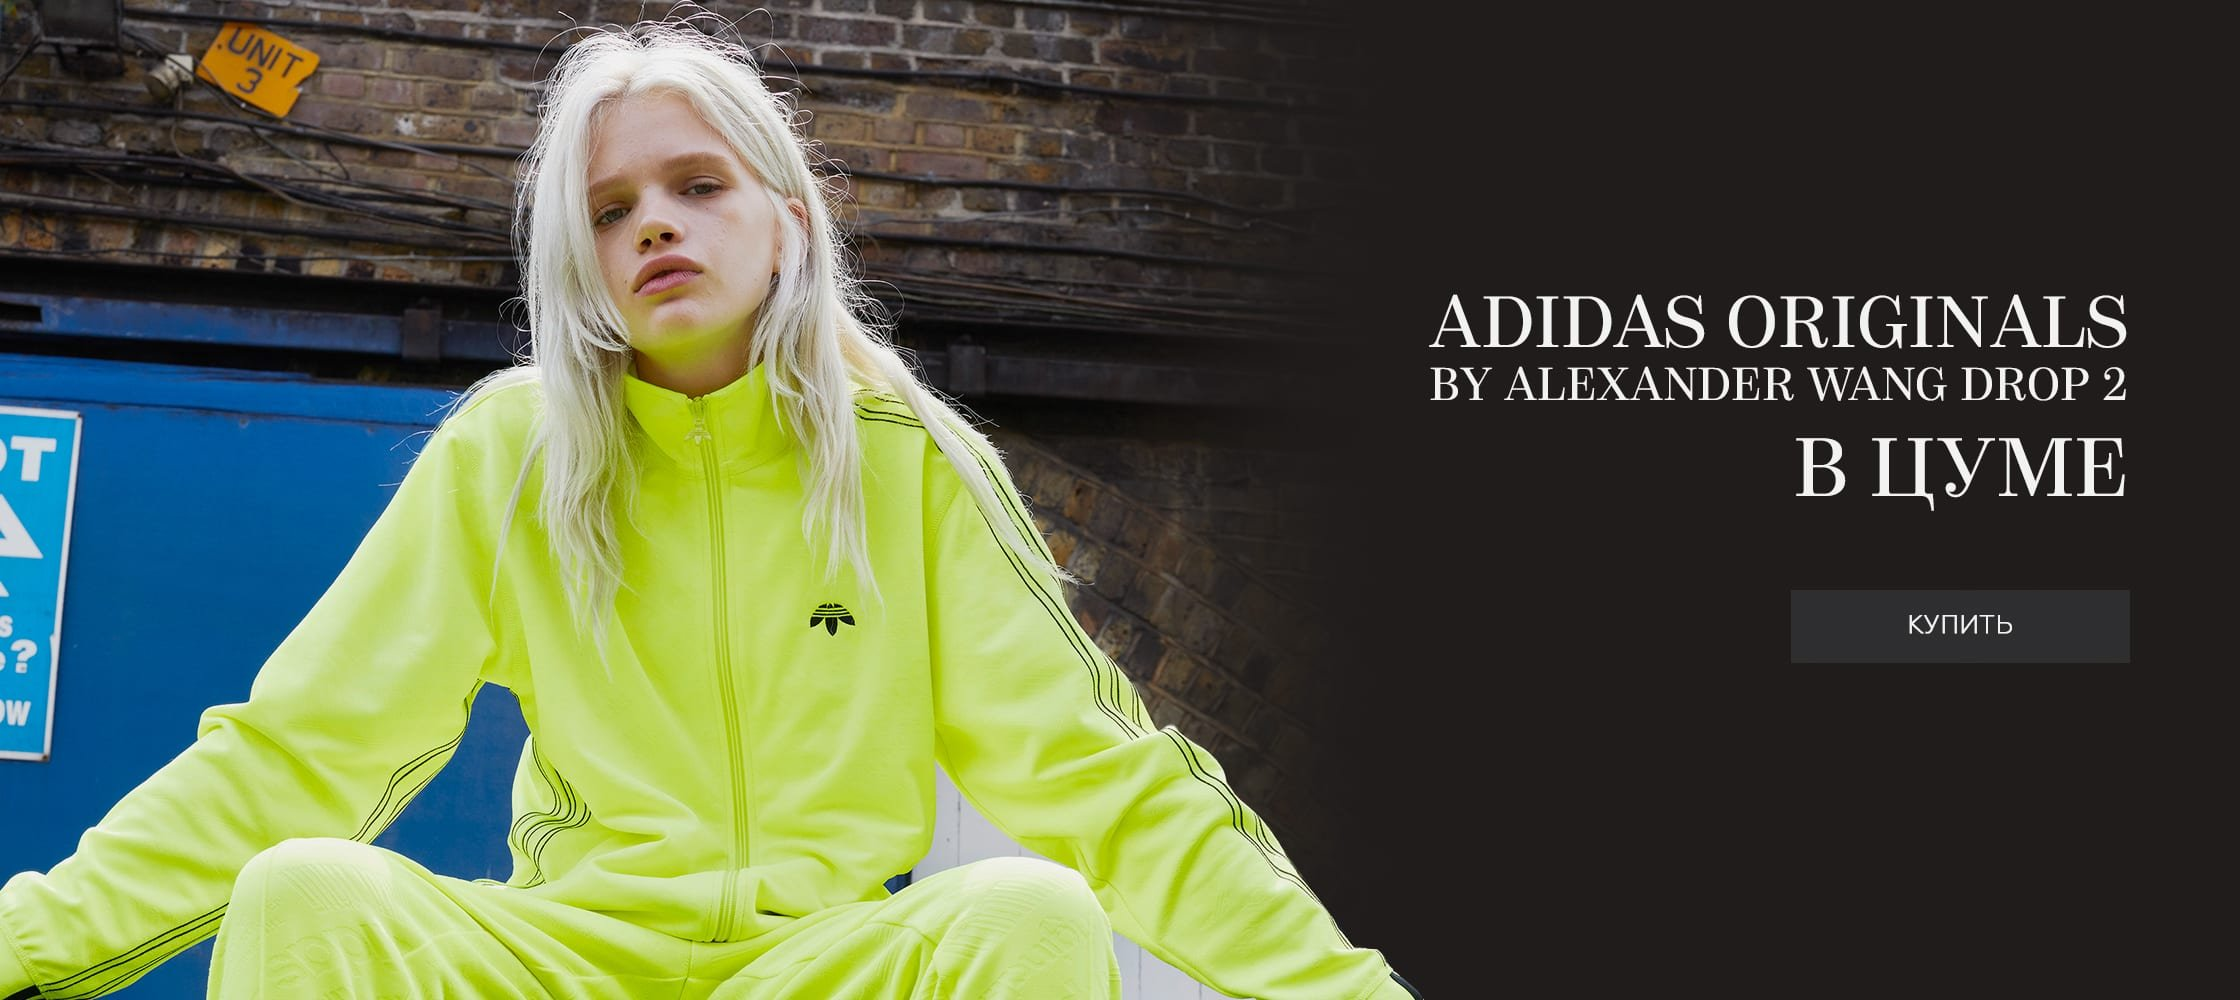 Adidas Originals by Alexander Wang drop 2 скоро в ЦУМе!